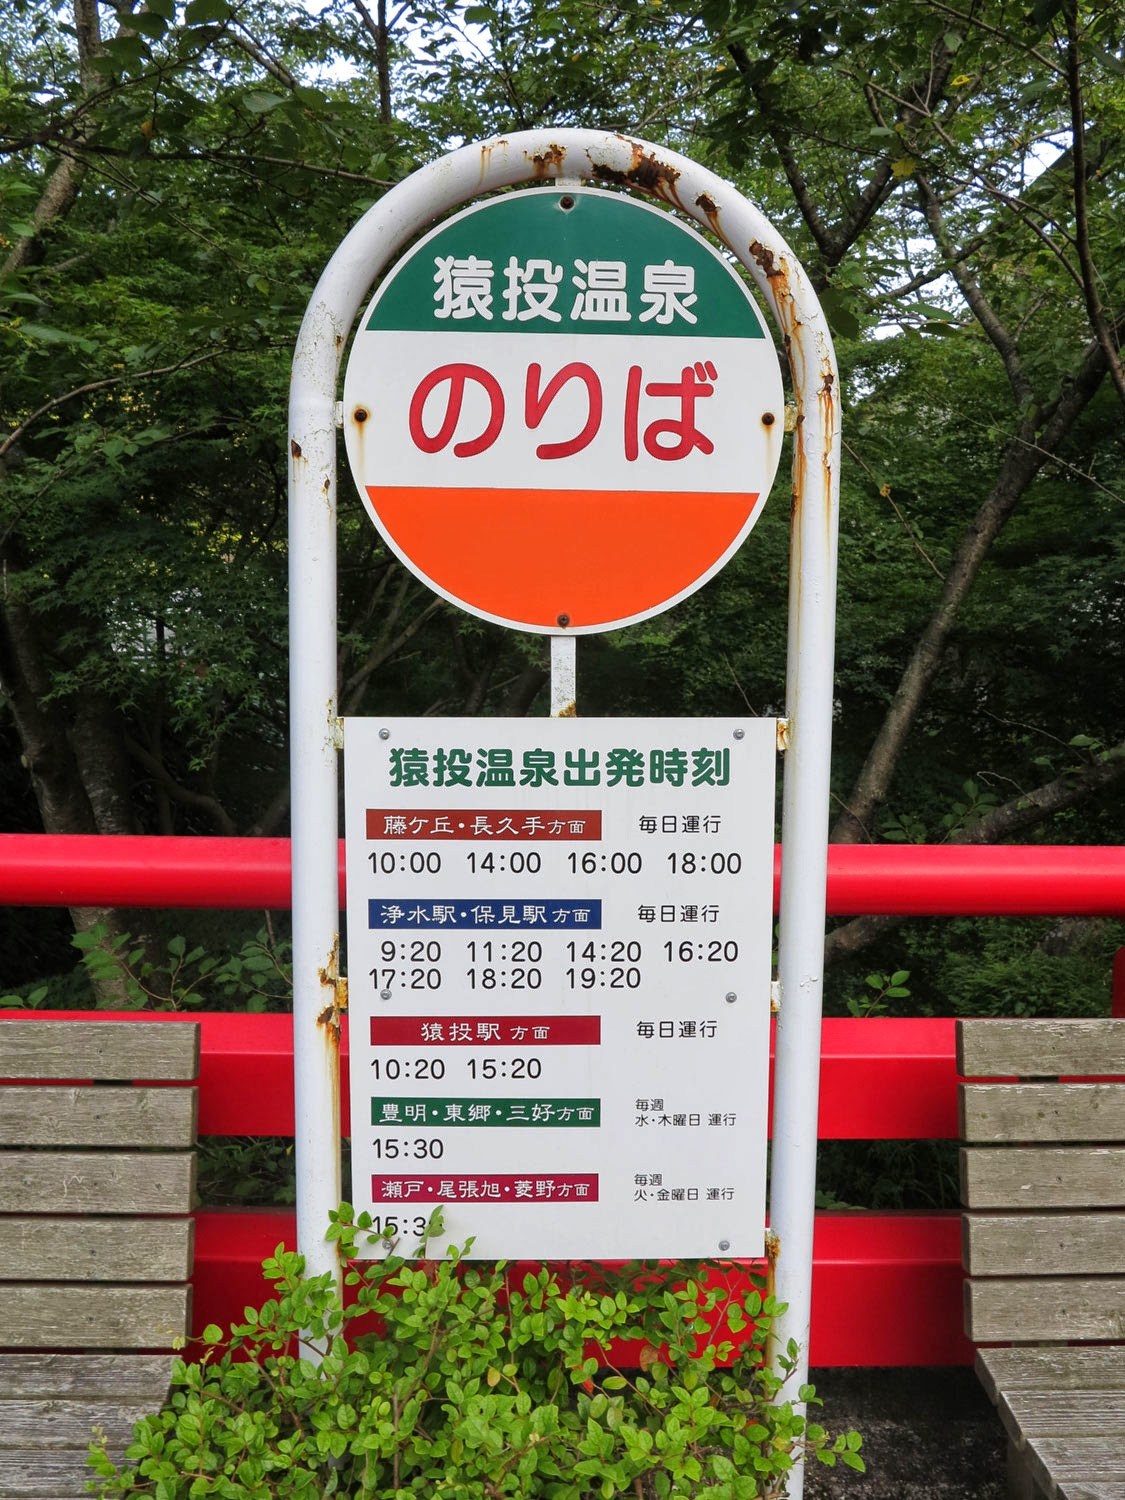 Bus times to Sanage Onsen